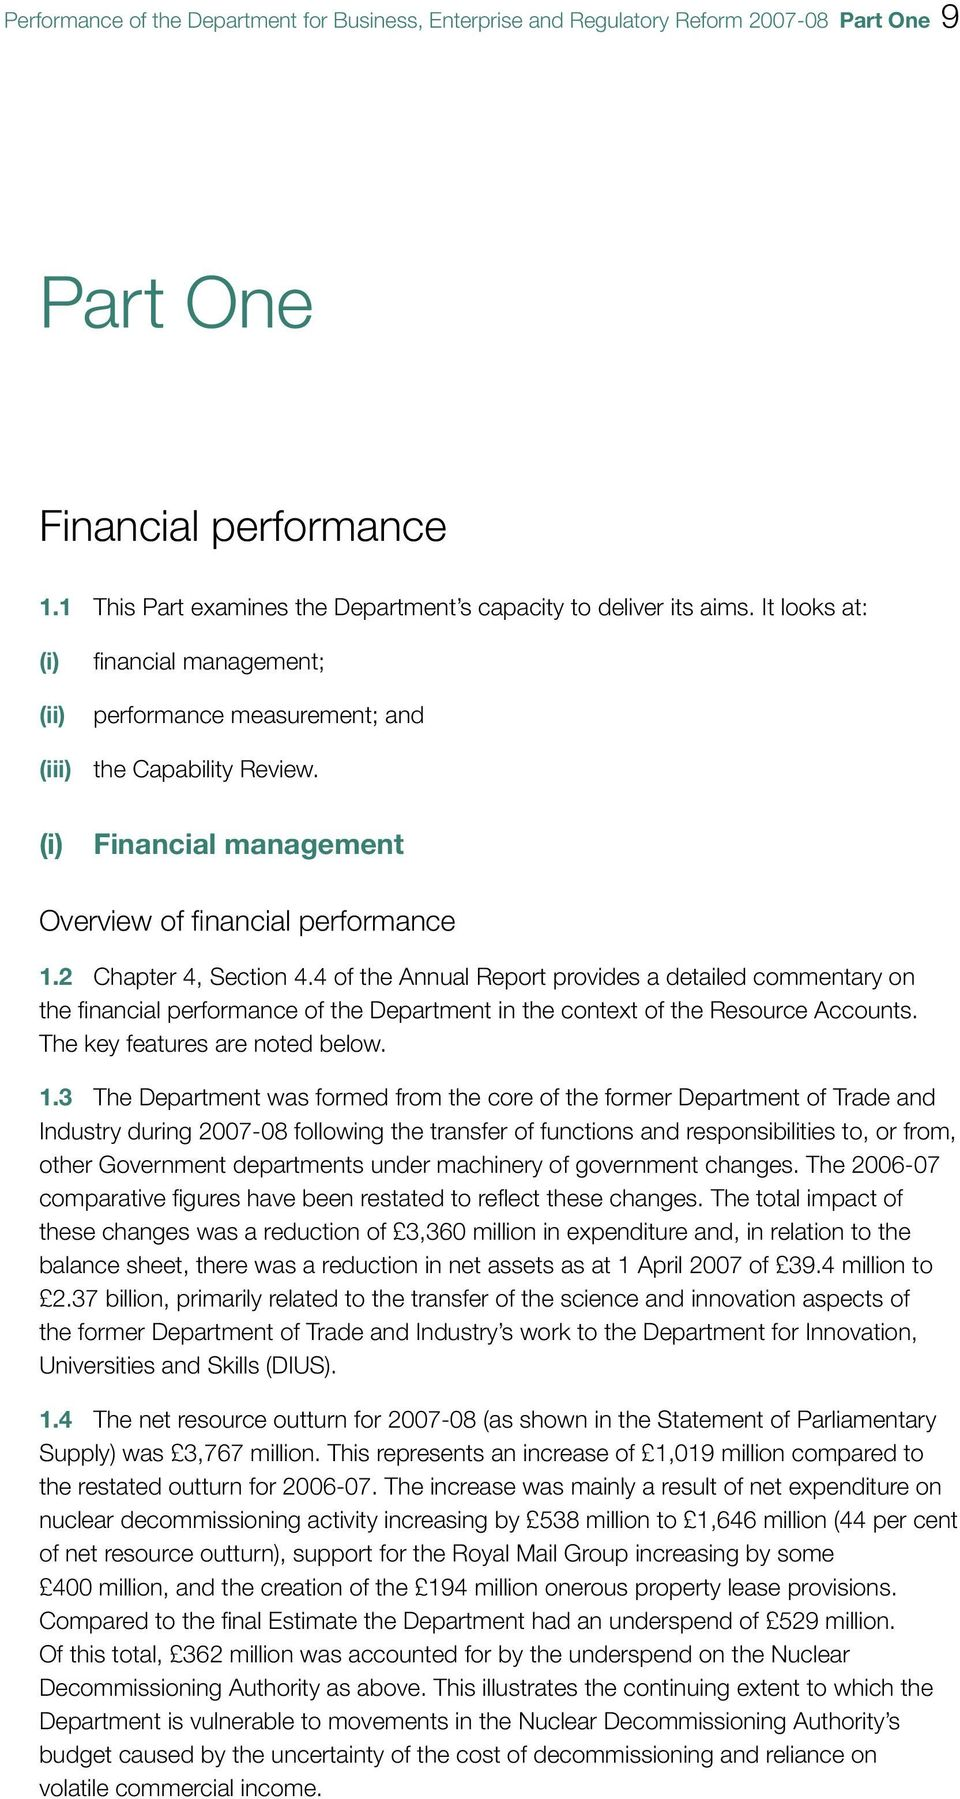 4 of the Annua Report provides a detaied commentary on the financia performance of the Department in the context of the Resource Accounts. The key features are noted beow. 1.